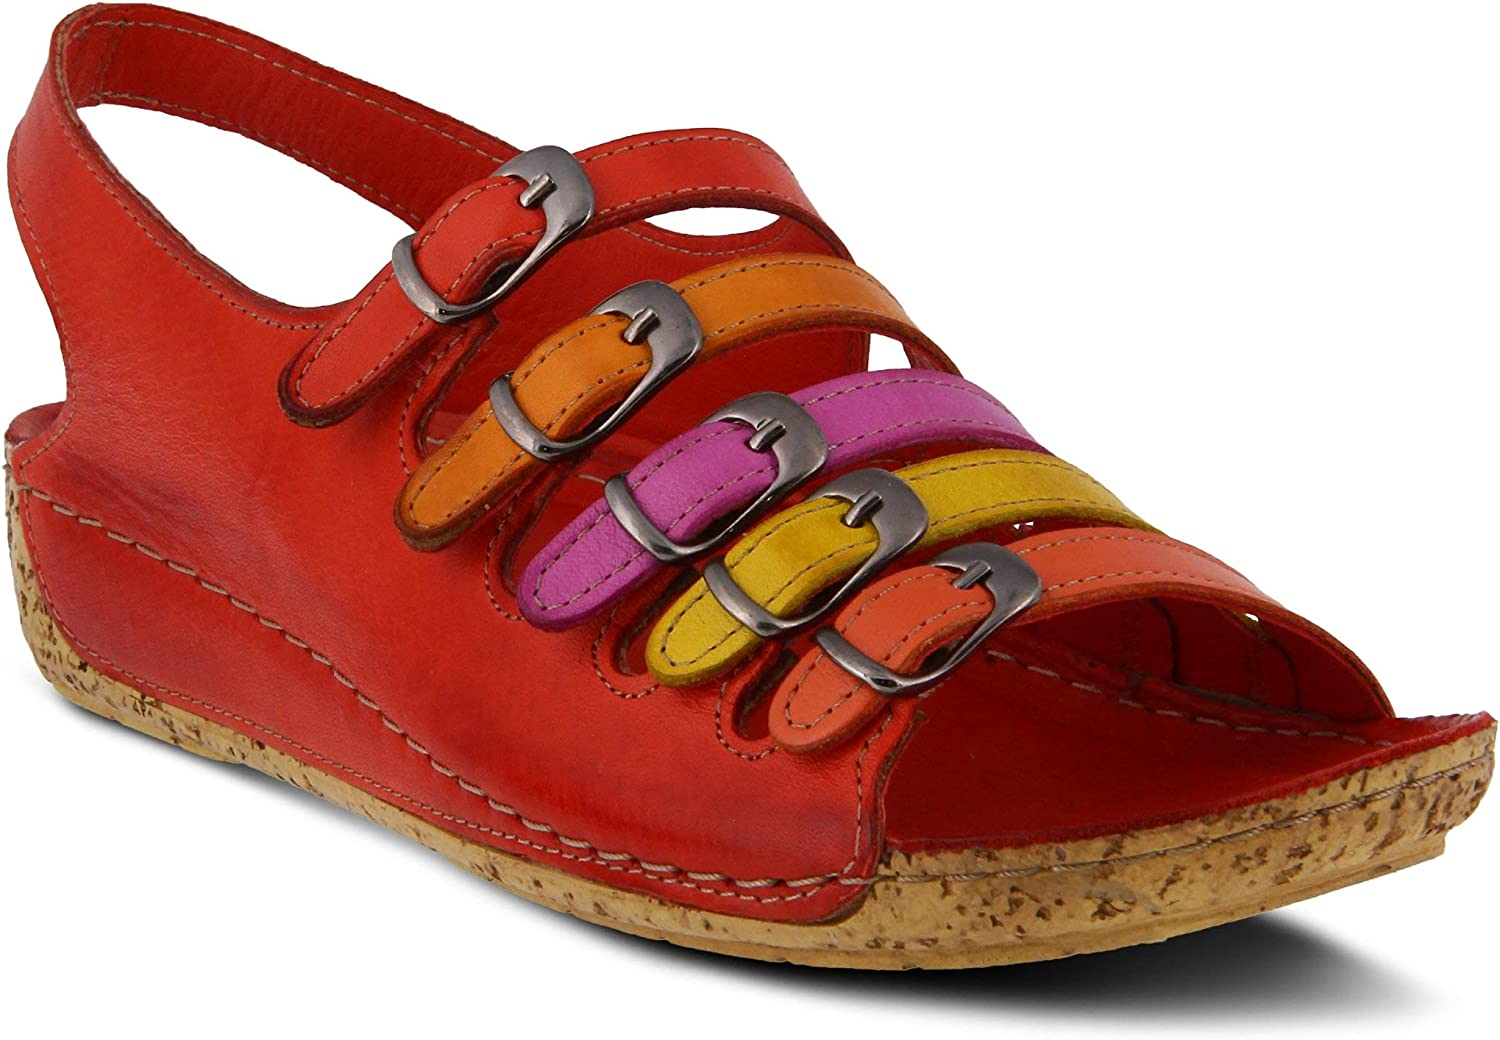 Spring Step Women's Wedge Sandal Kalamata Some Max 90% OFF reservation